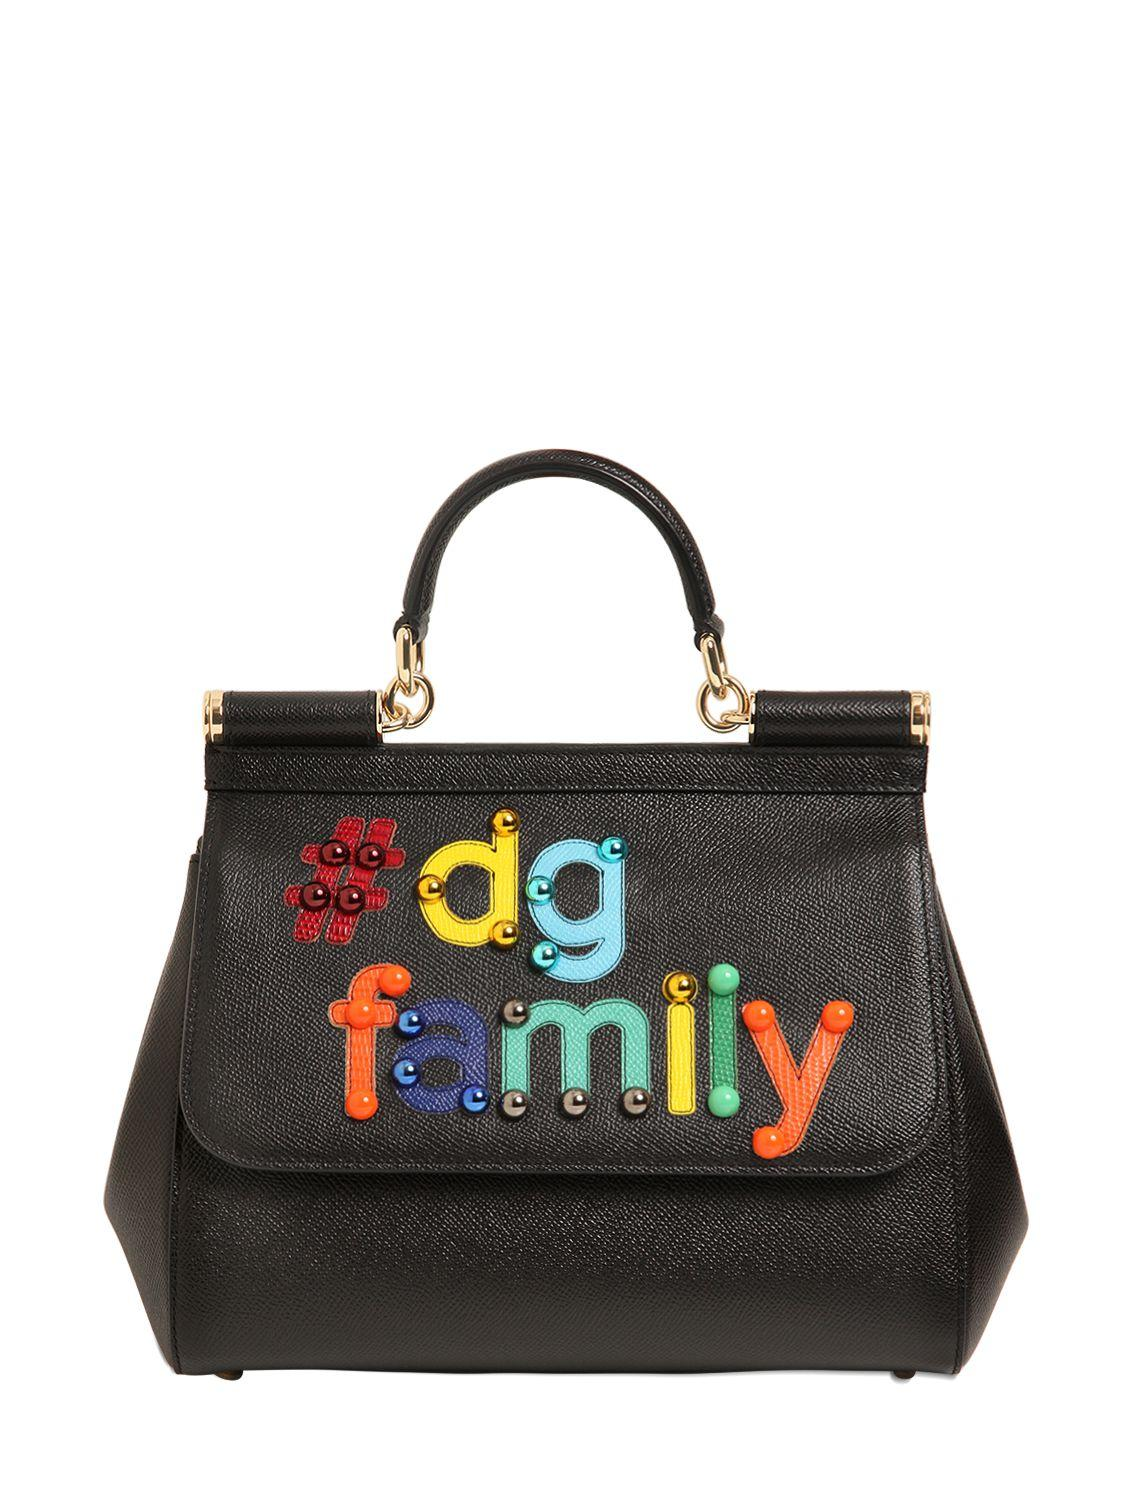 b57f1bb4e9 Lyst - Dolce   Gabbana Medium Sicily Dg Family Leather Bag in Black